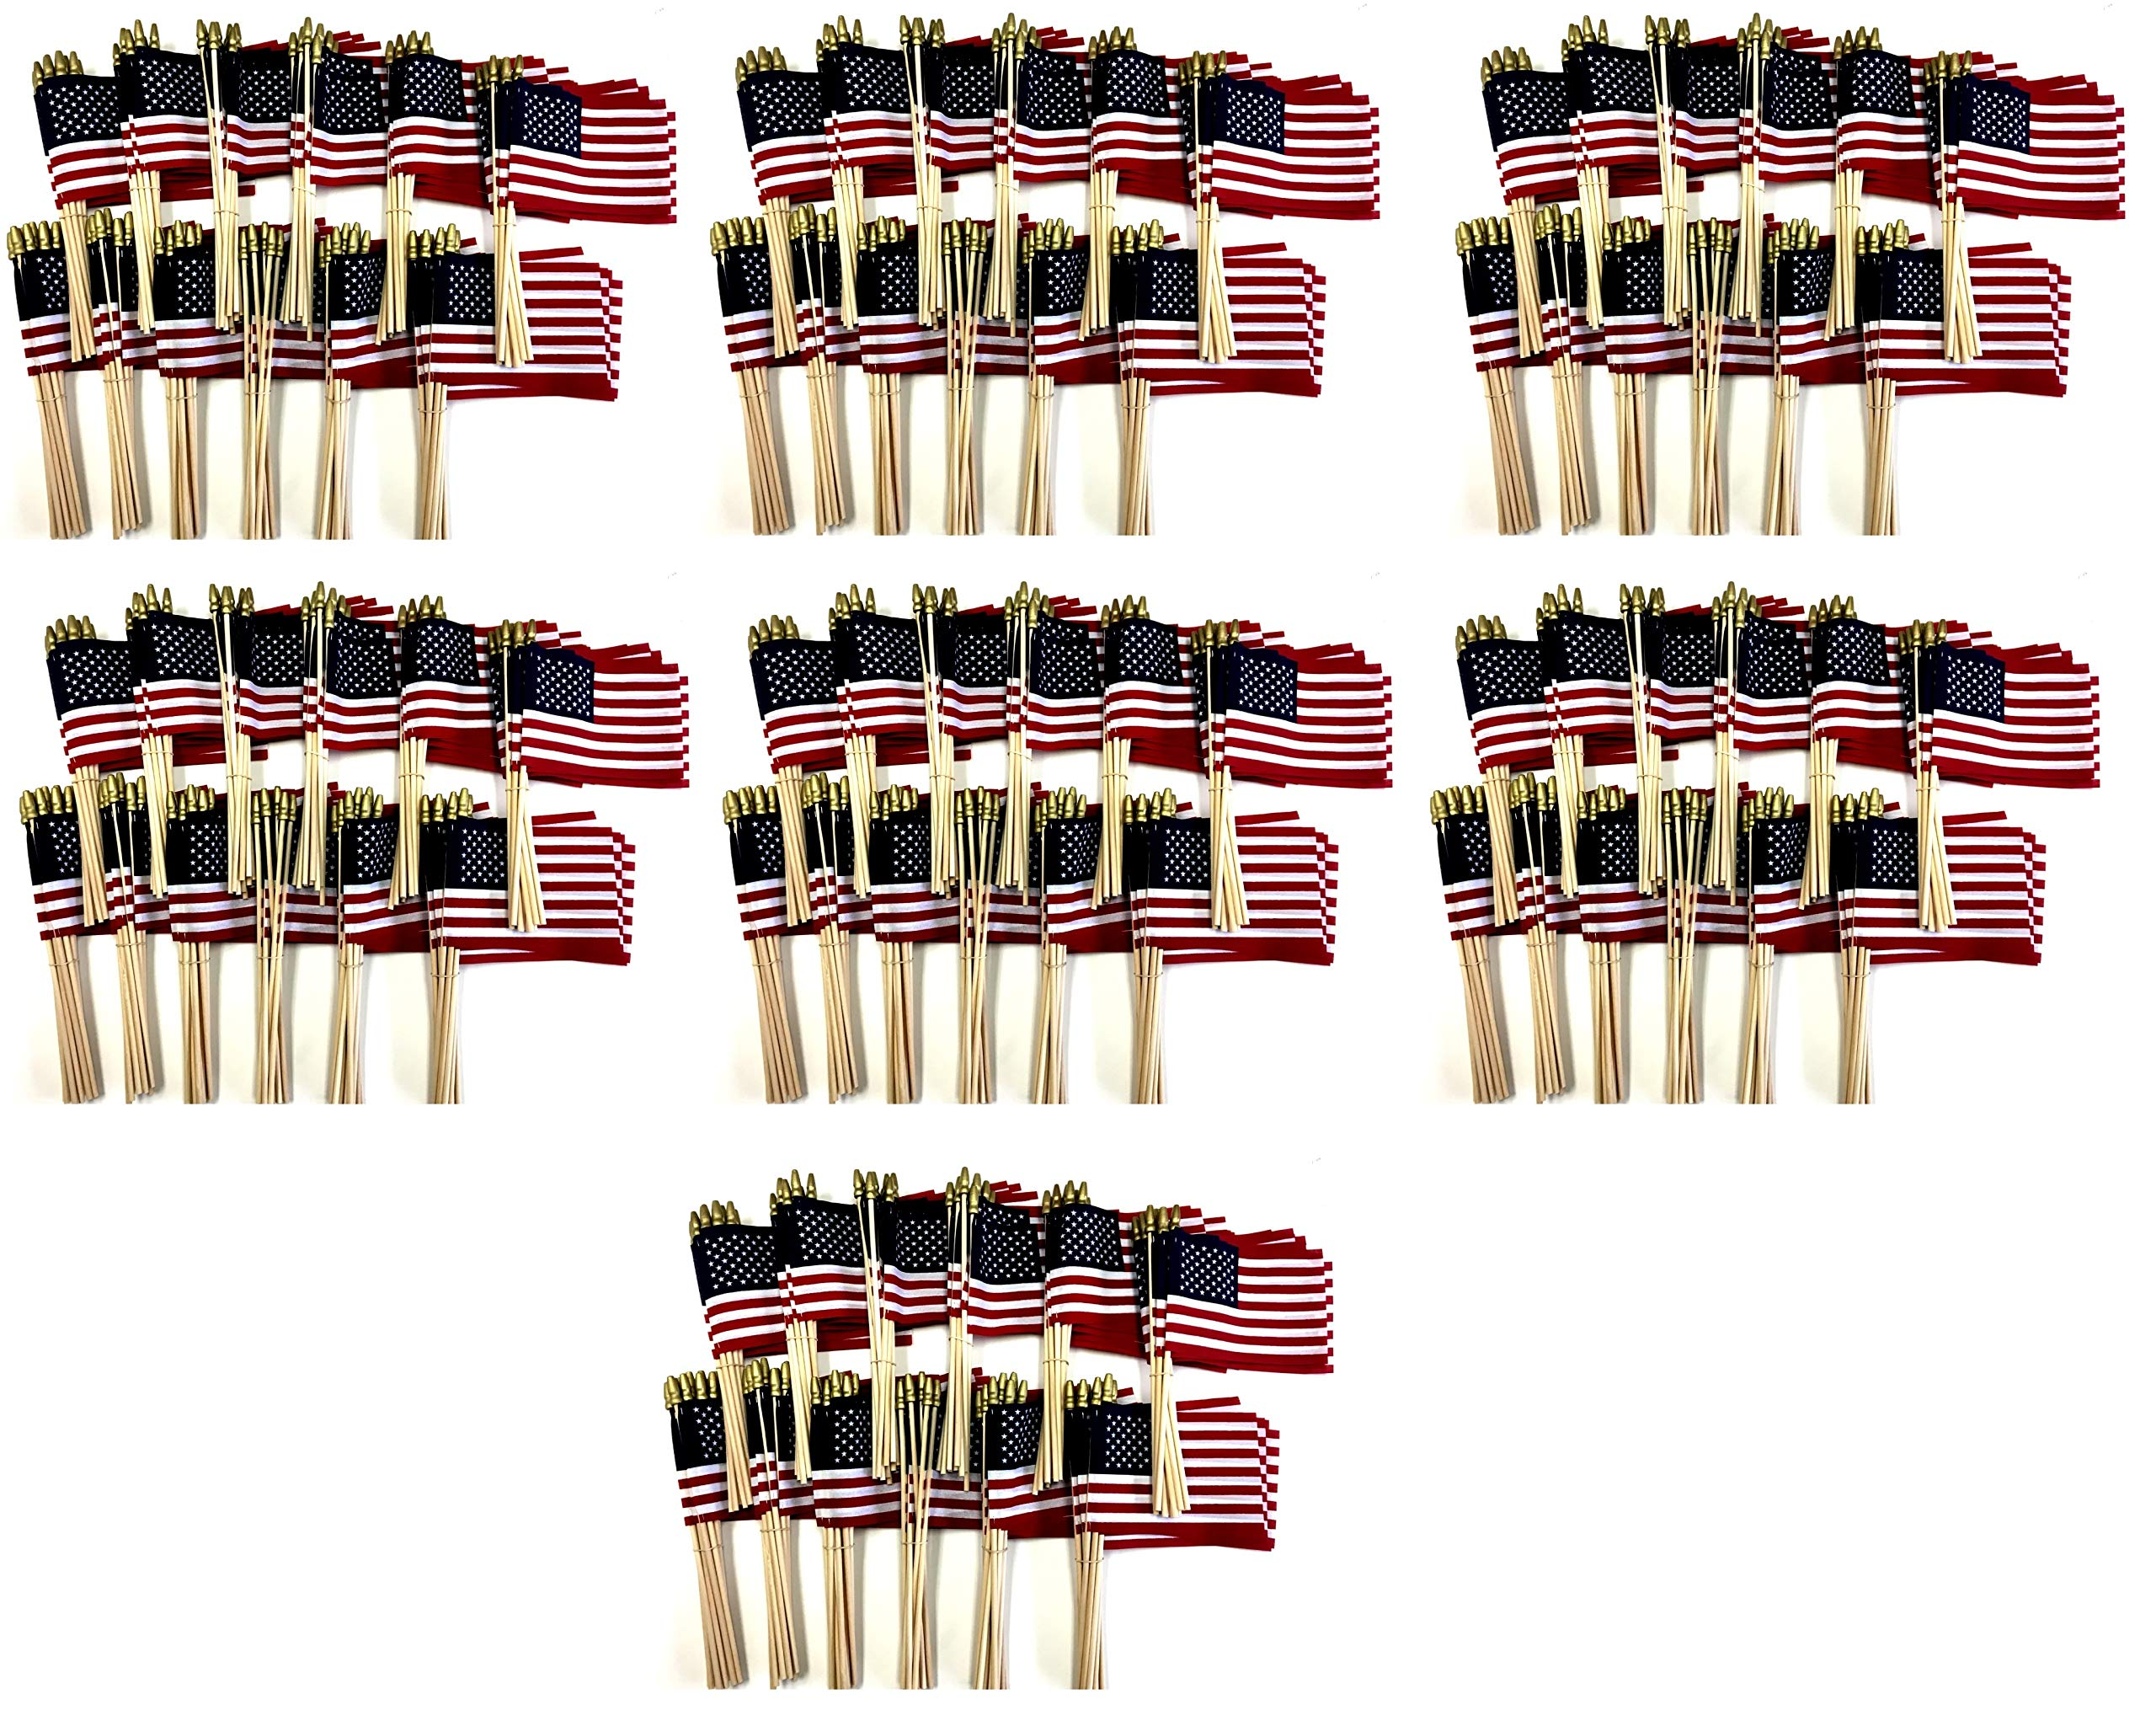 Made in The USA!! Wholesale Case of 1000 Cotton 4''x6'' United States Miniature Desk & Little Table Flags, 84 Dozen 4''x 6'' Cotton American Small Mini Handheld Waving Stick Flag by World Flags Direct